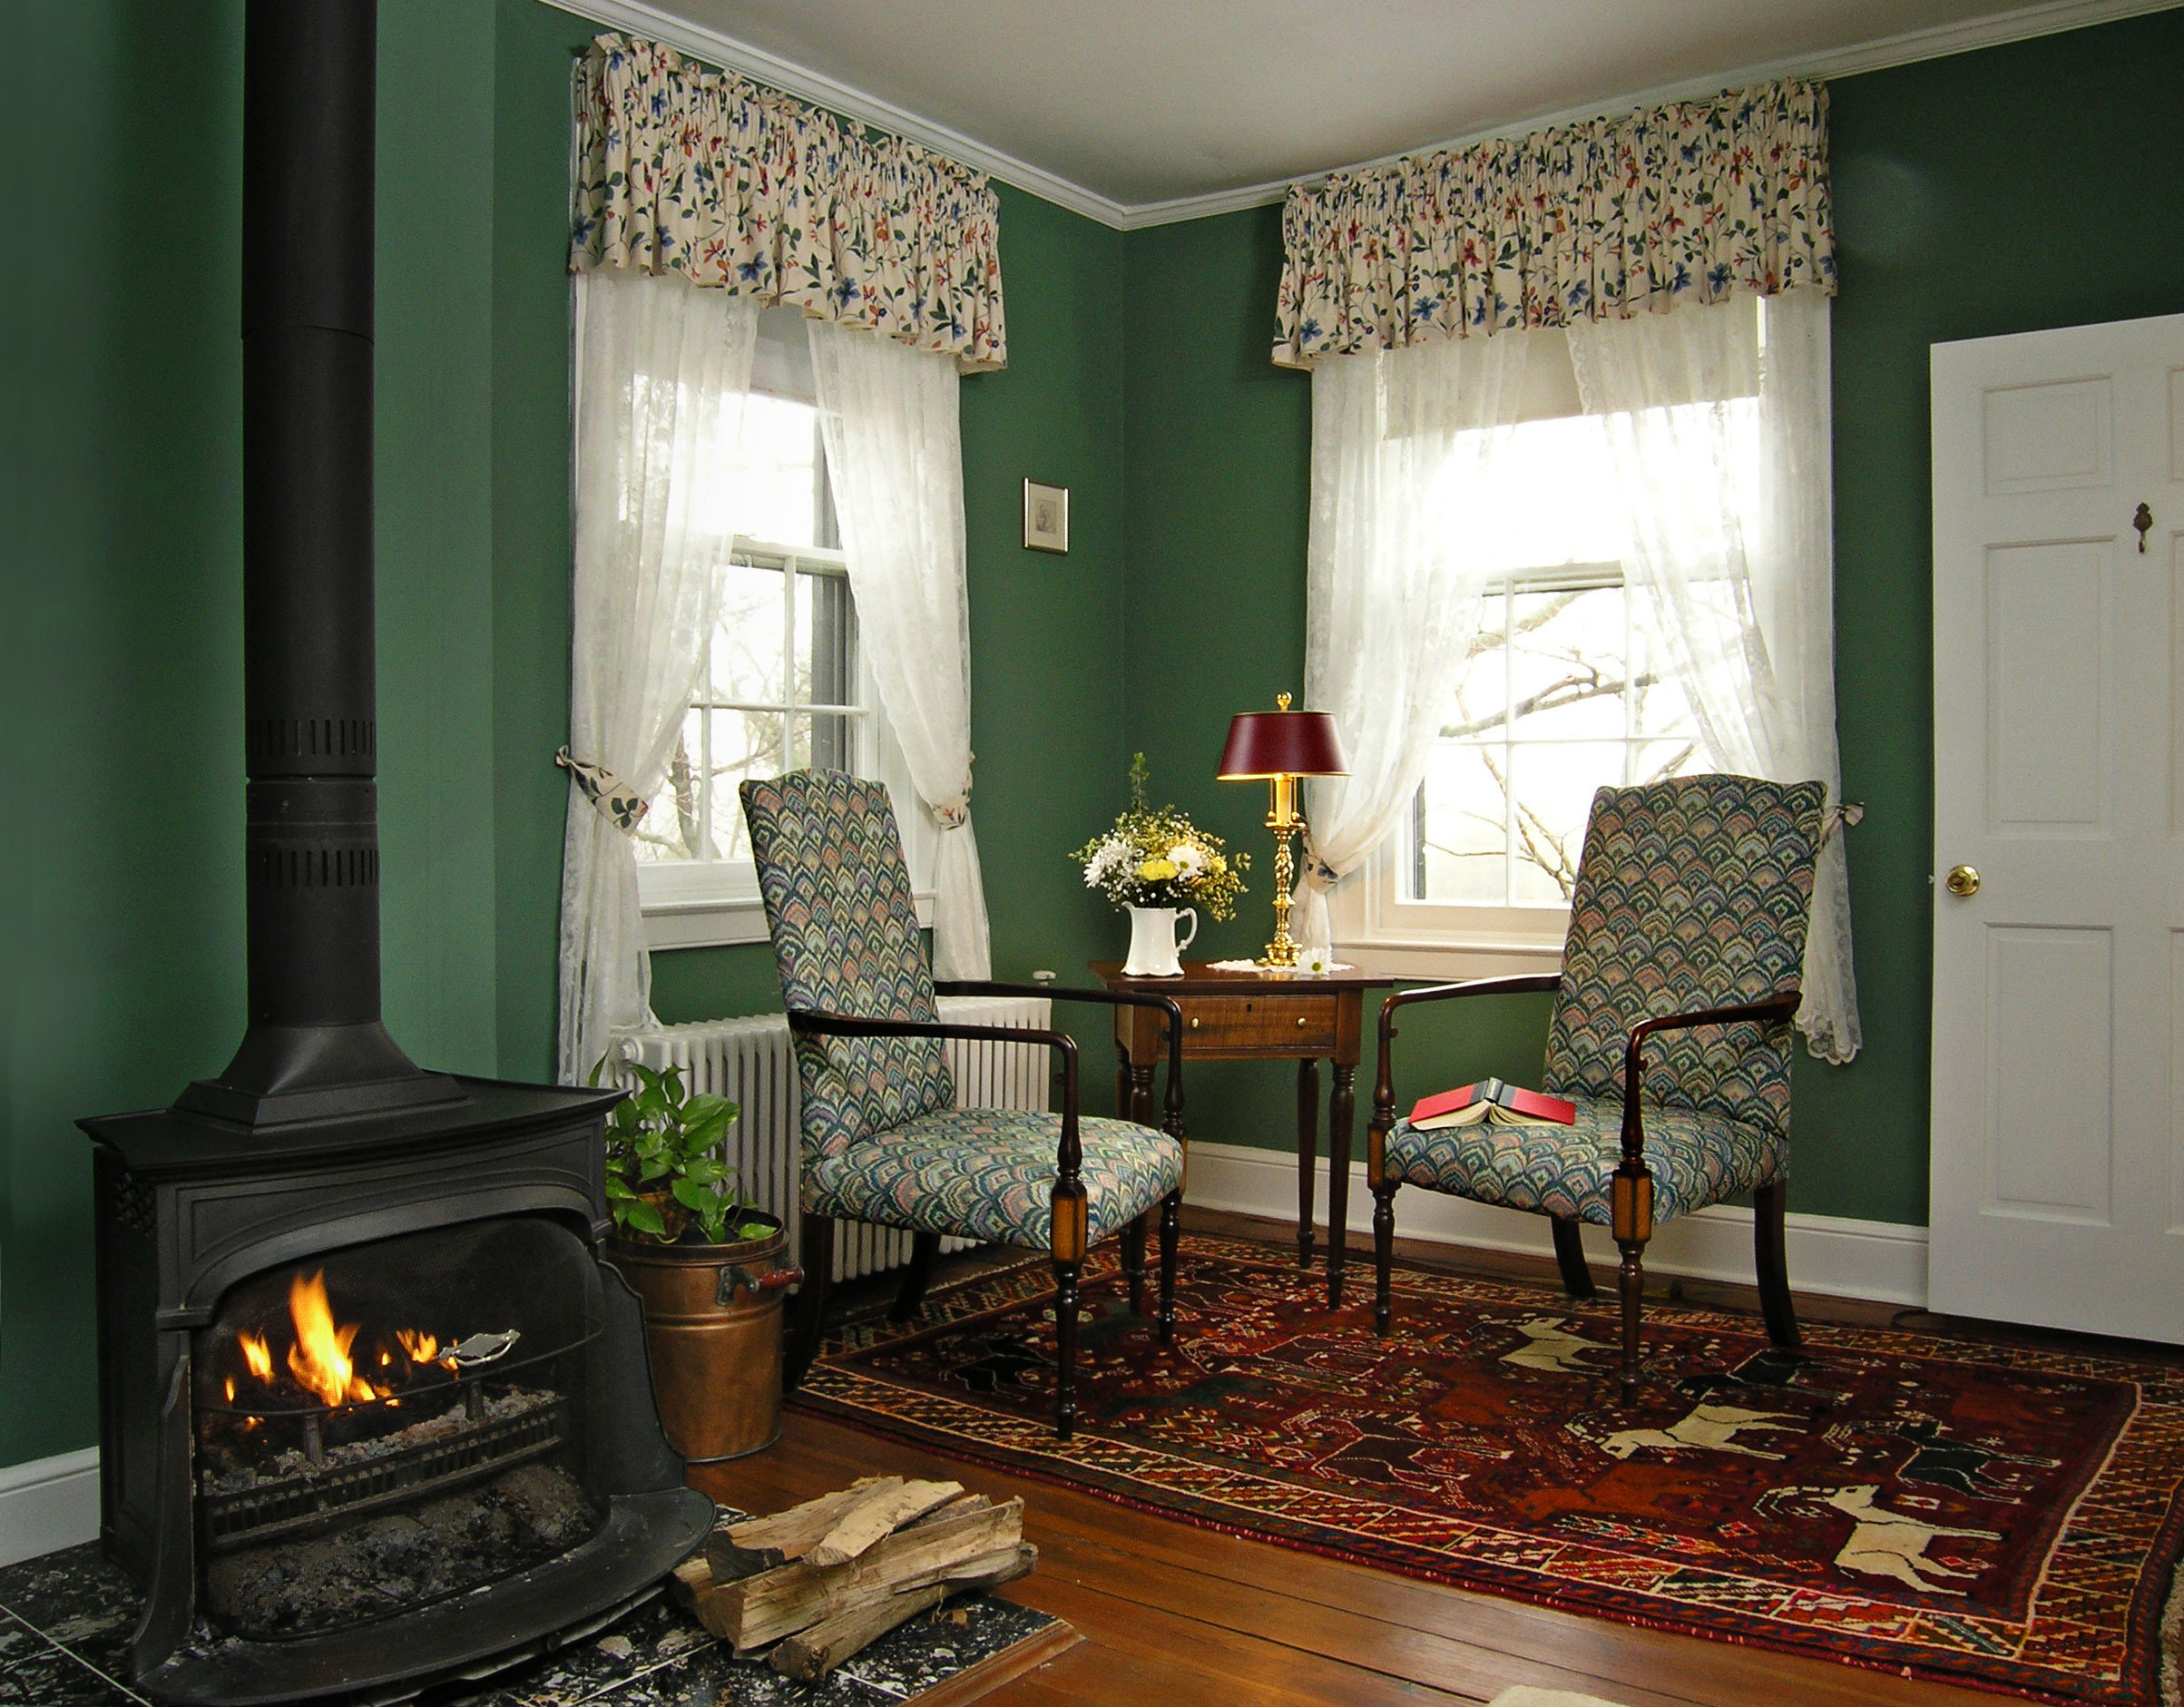 B&B Classic Country Fireplace Inn Romantic property living room home cottage hearth